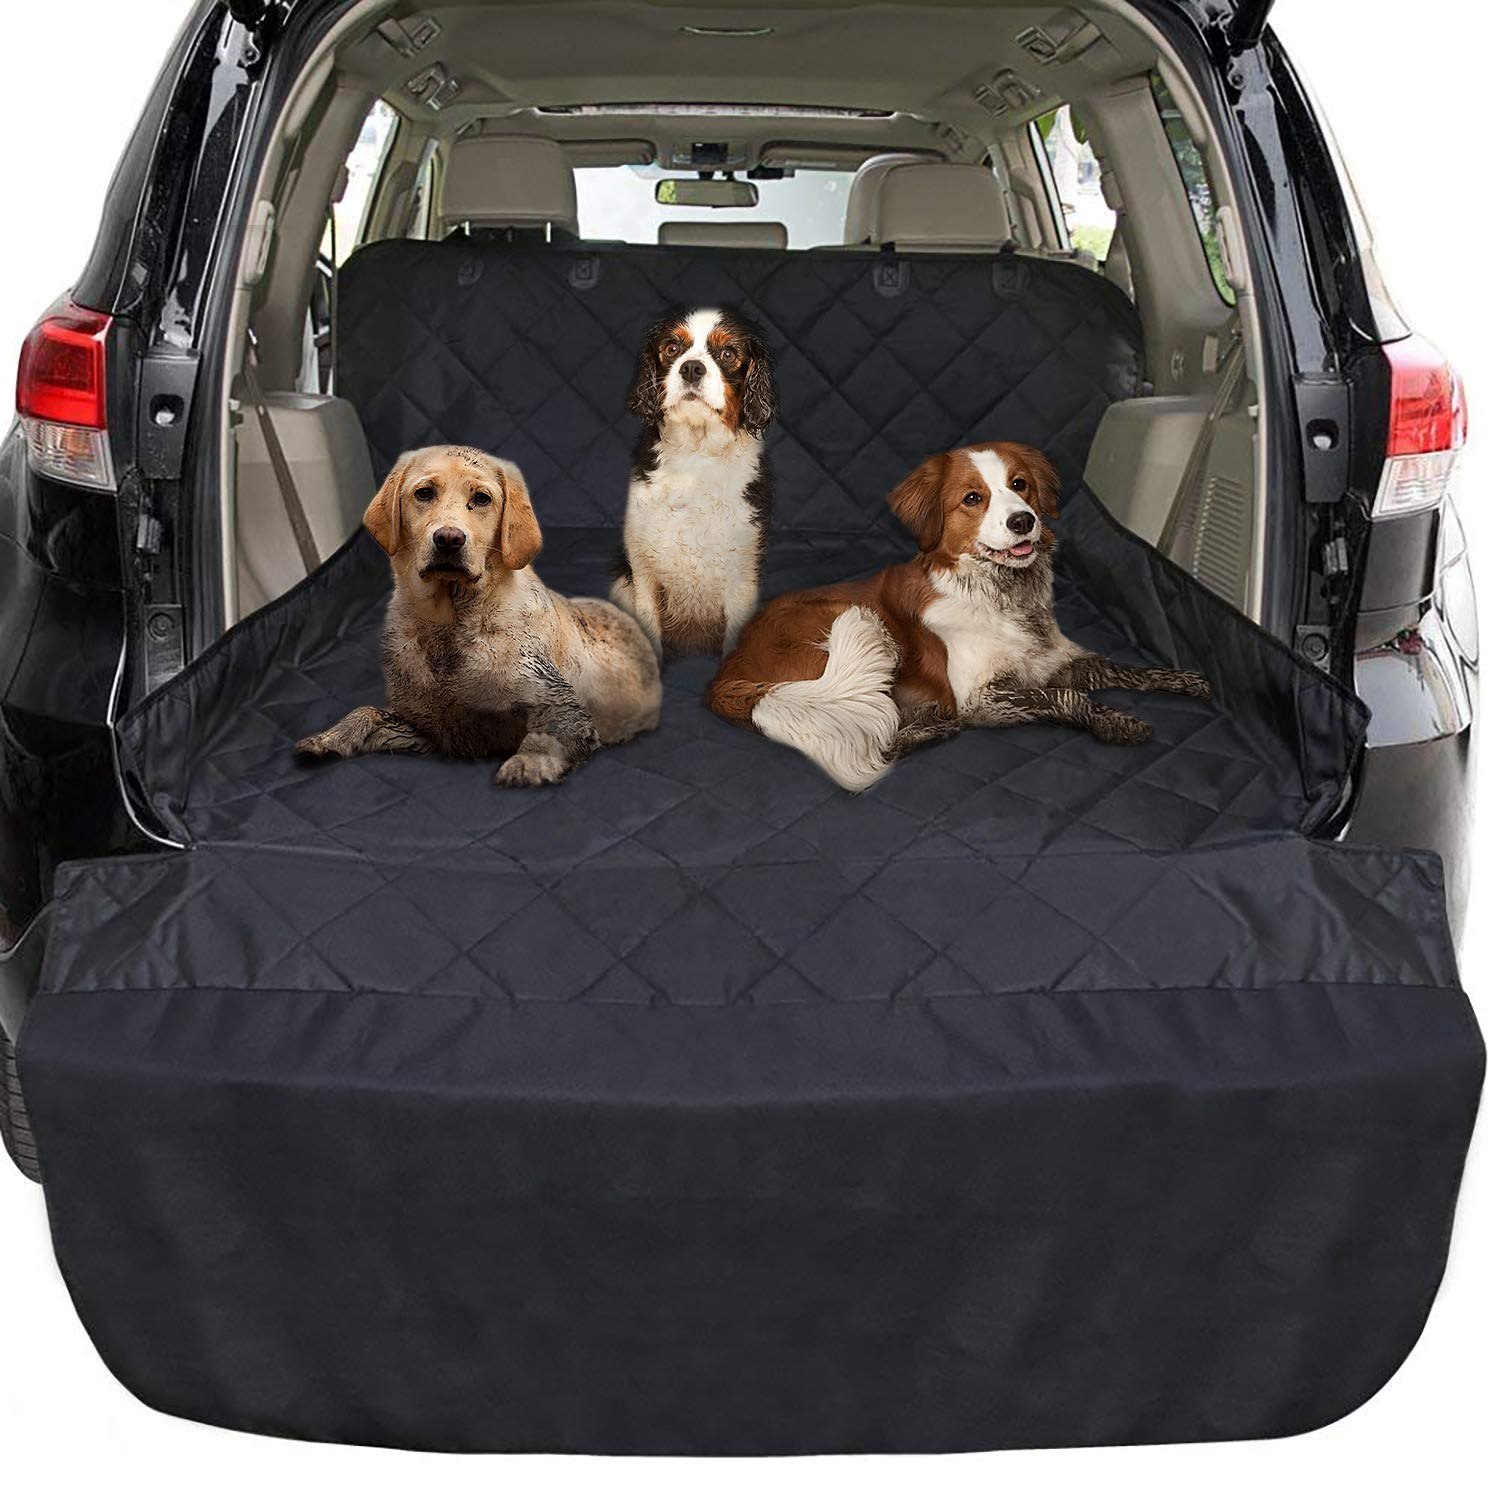 FunniPets Cargo Liner for Dogs SUV, Large Size Universal Fit, Waterproof, Non-Slip Backing, Predective Bumper Flap